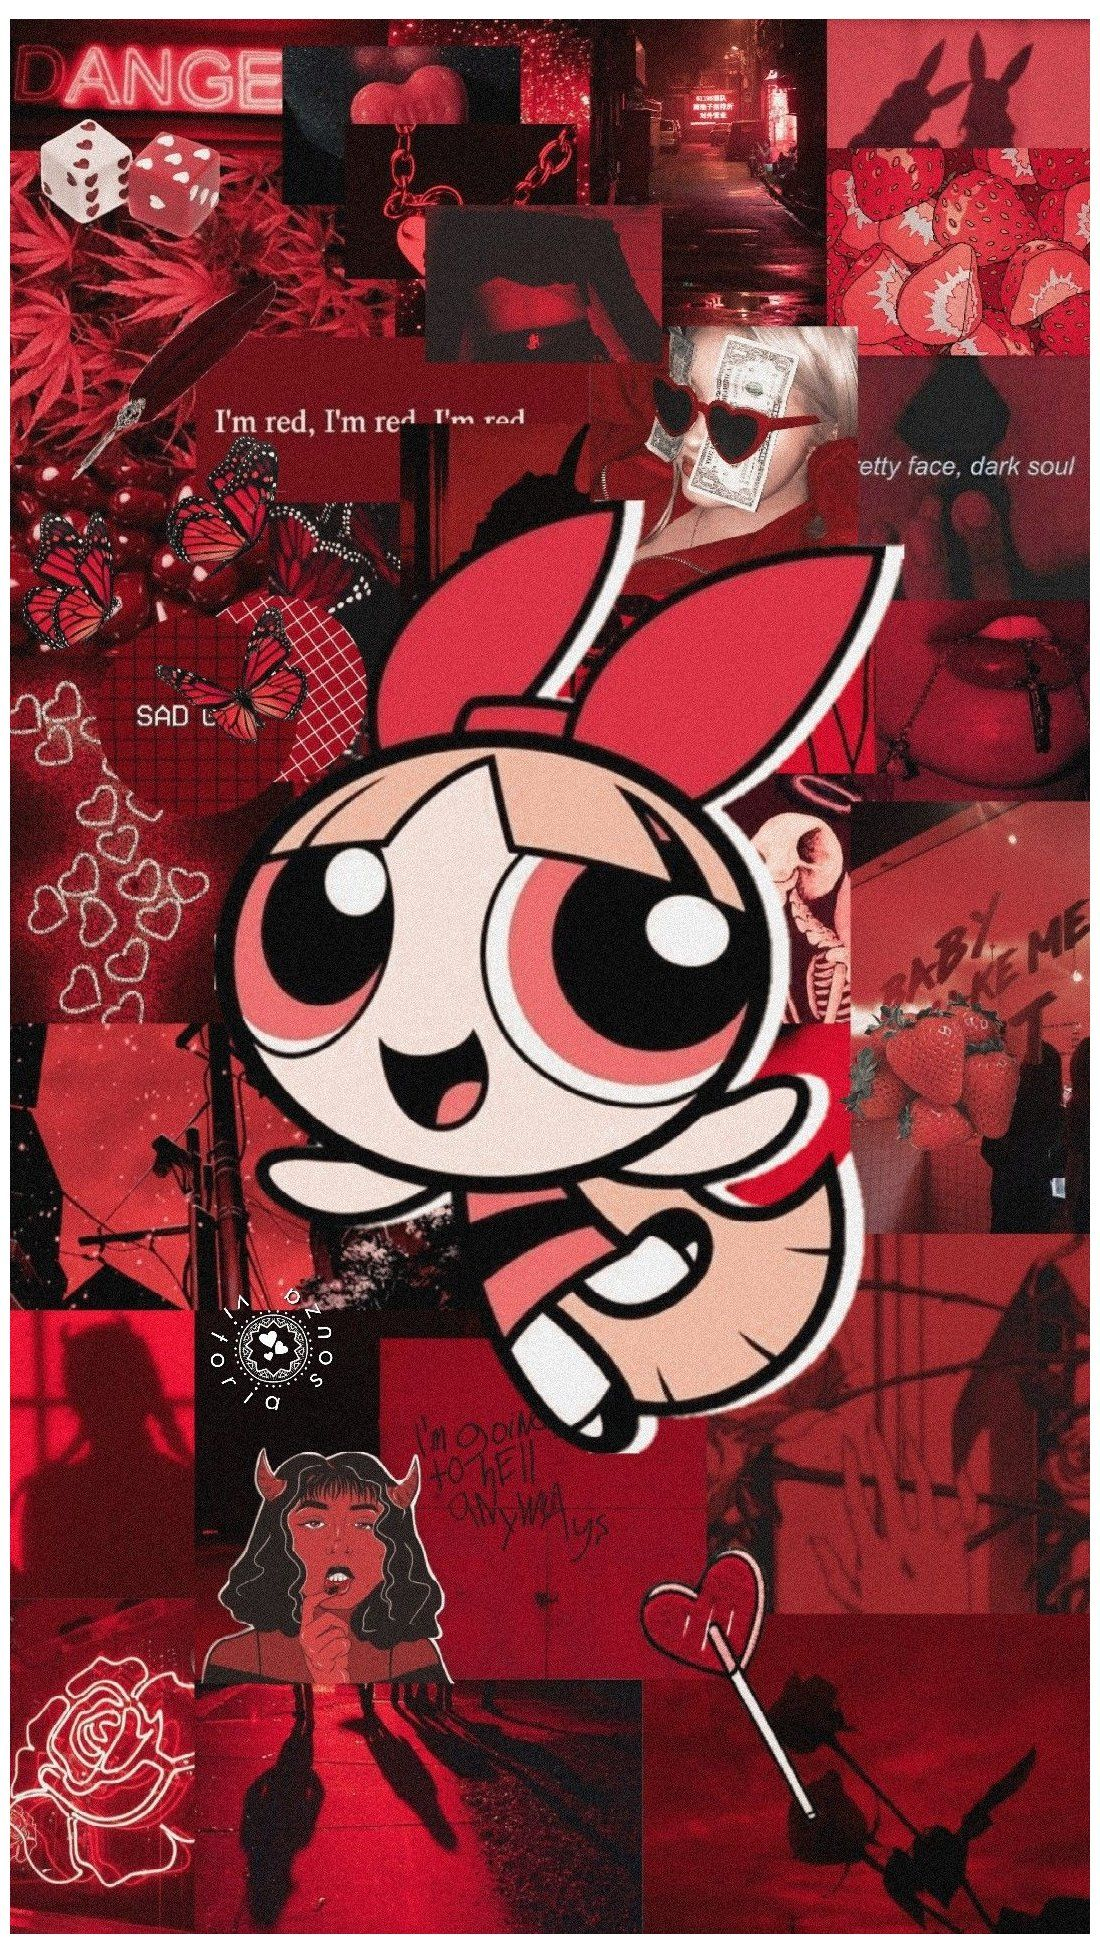 Pin By Chicy On Wallpapers In 2020 Halloween Wallpaper Iphone Purple Wallpaper Iphone Powerpuff Girls Wallpaper